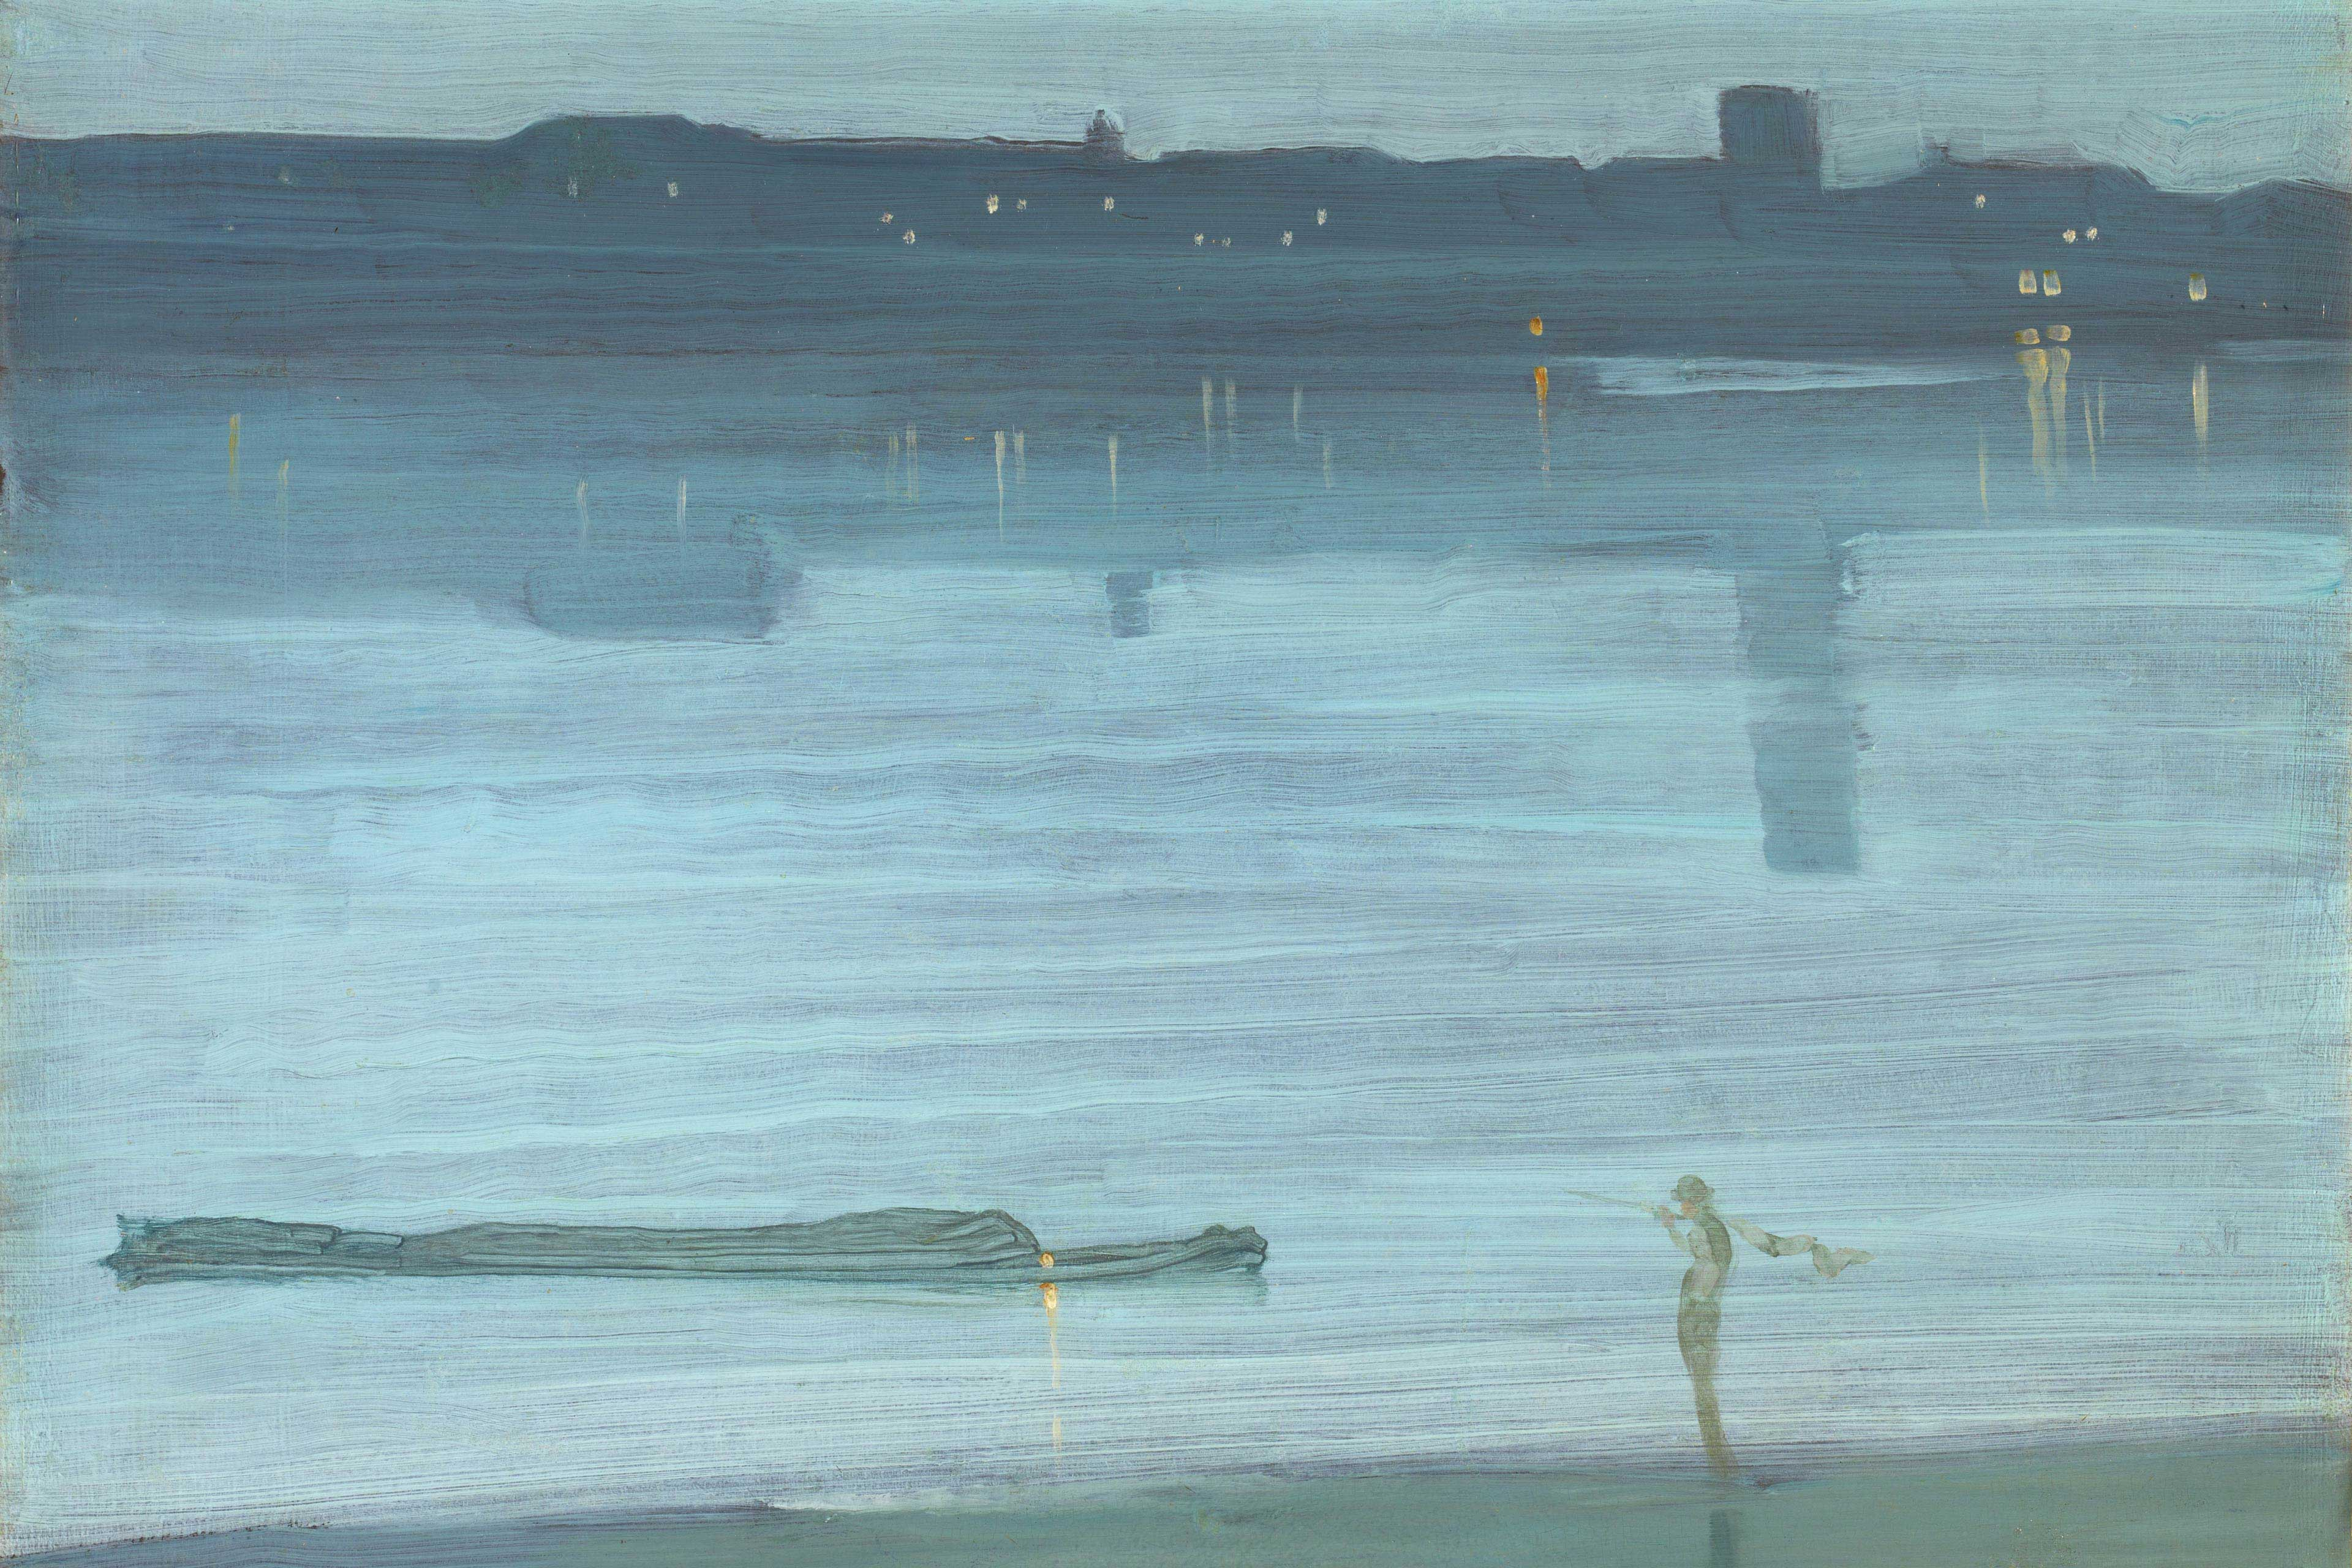 EY Painting by James Abbott McNeill Whistler